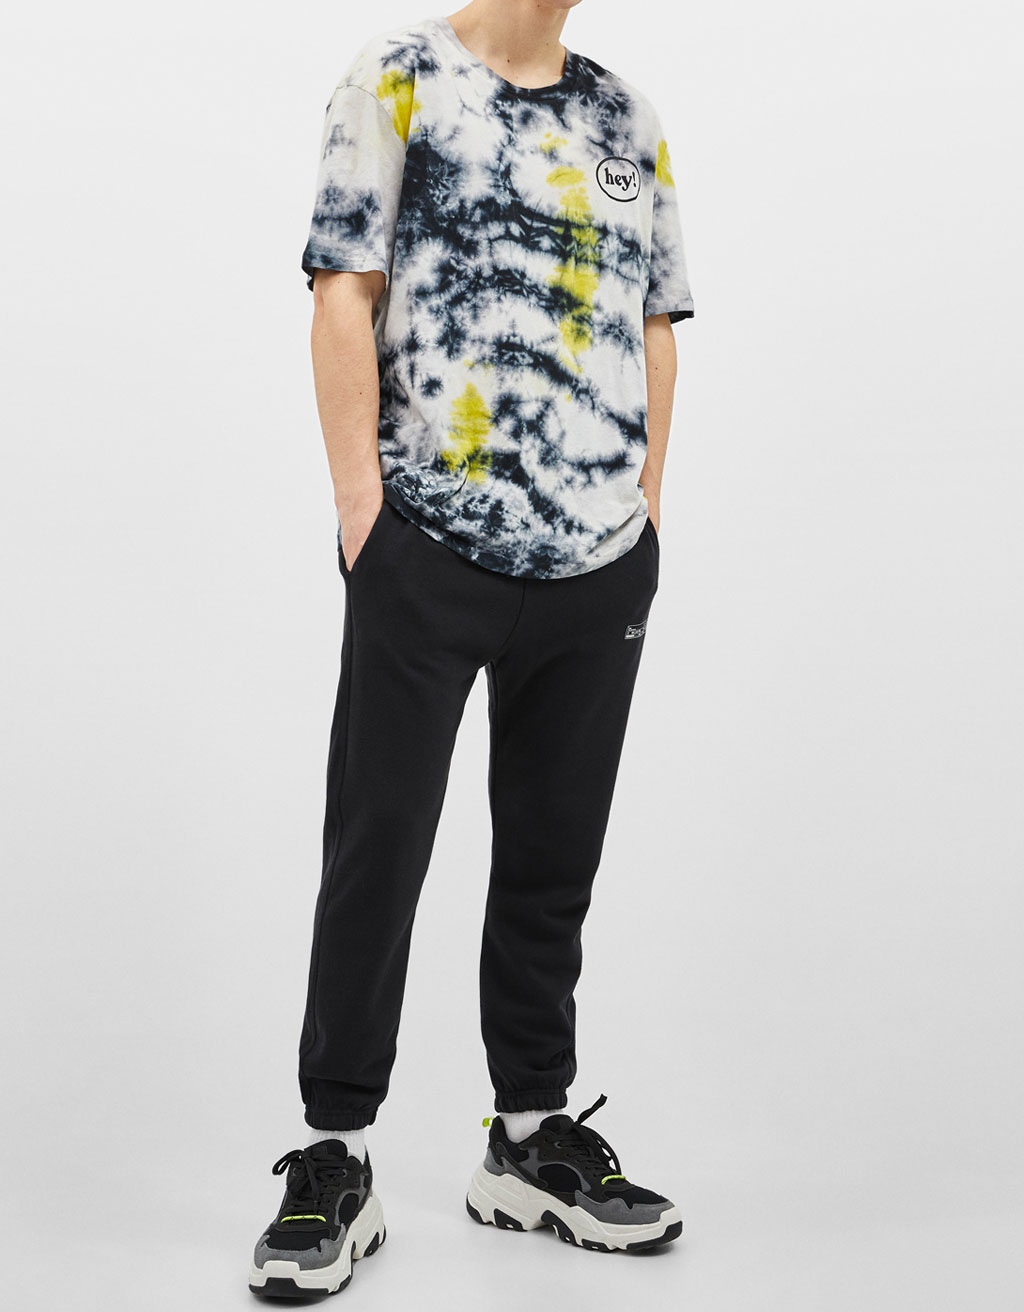 Oversized T-shirt with tie-dye print